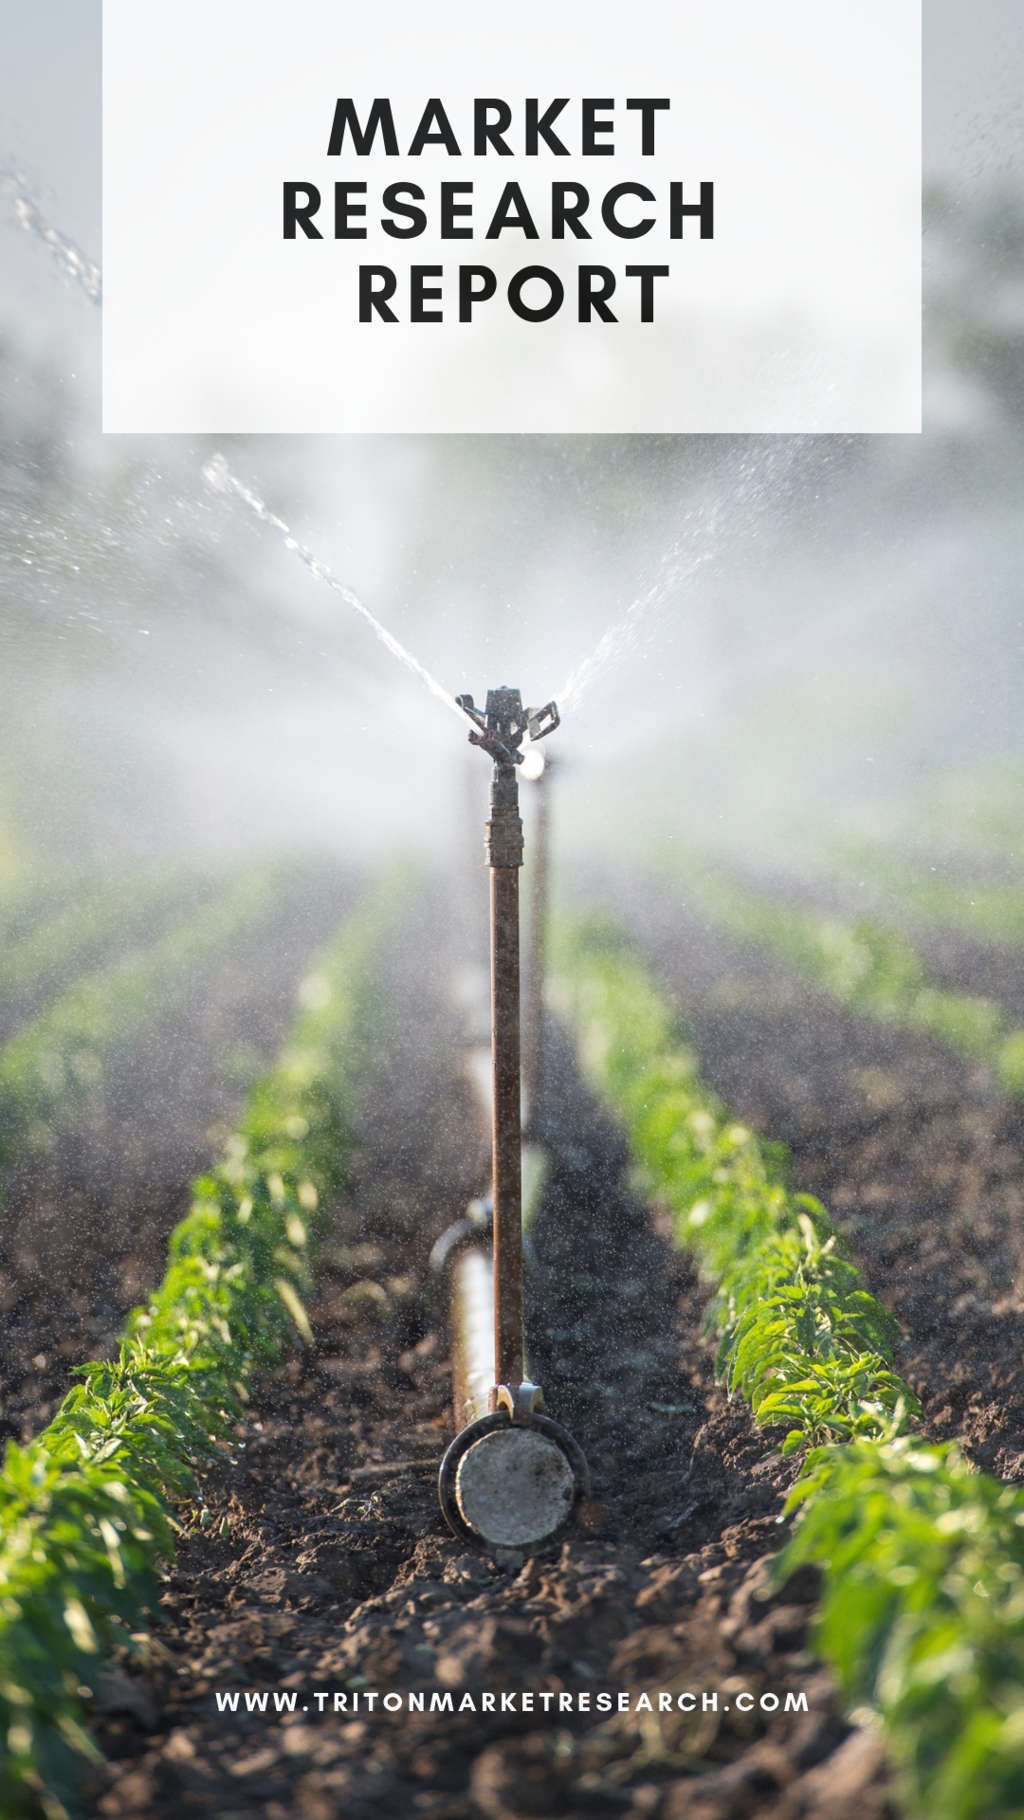 GLOBAL MICRO IRRIGATION SYSTEMS MARKET 2021-2028